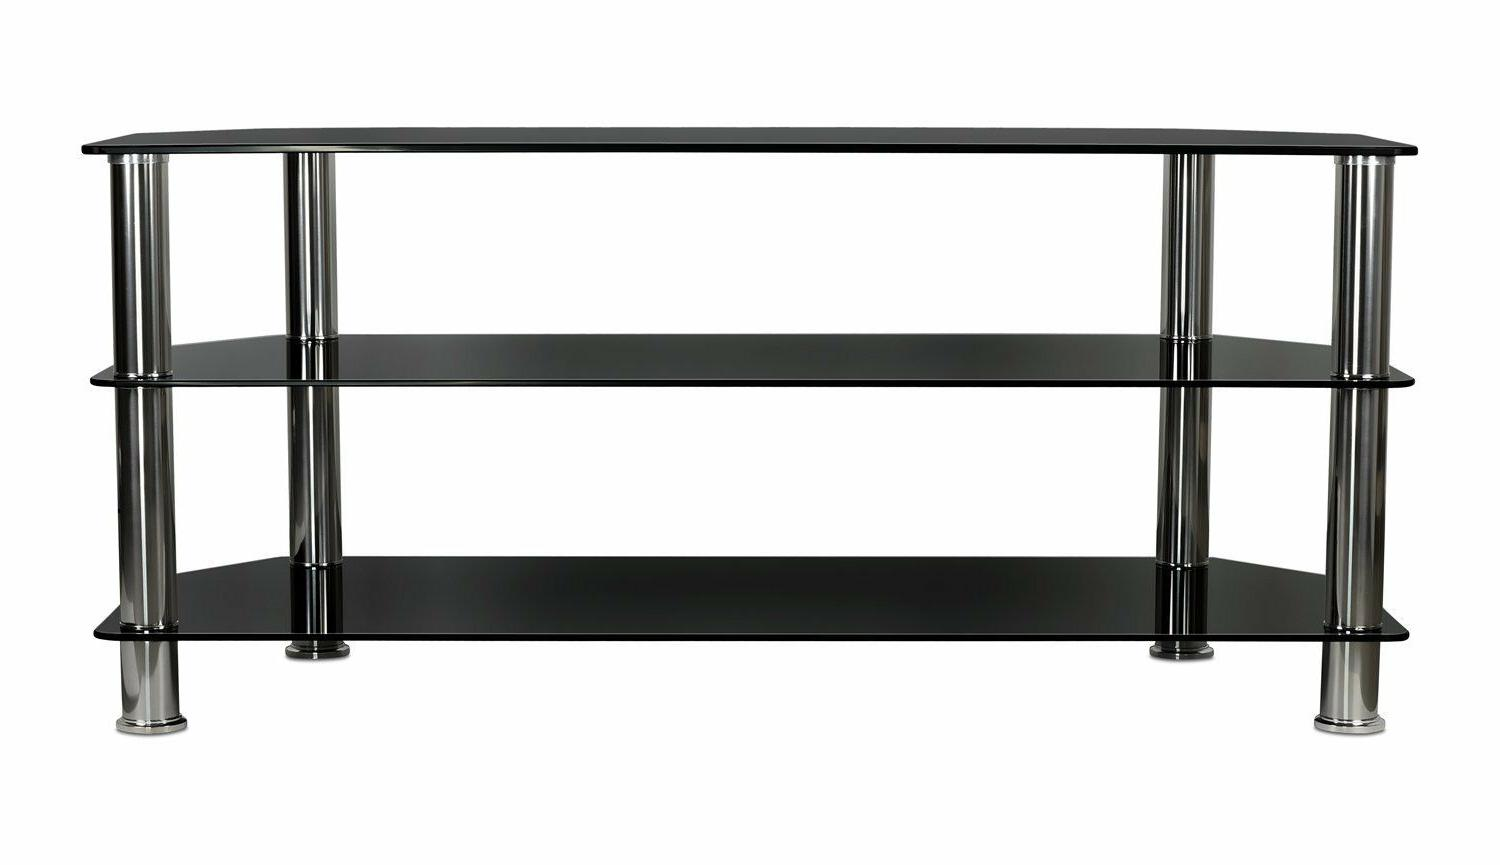 Mount-It! Glass Stand Tempered Glass Shelves For TV to 60